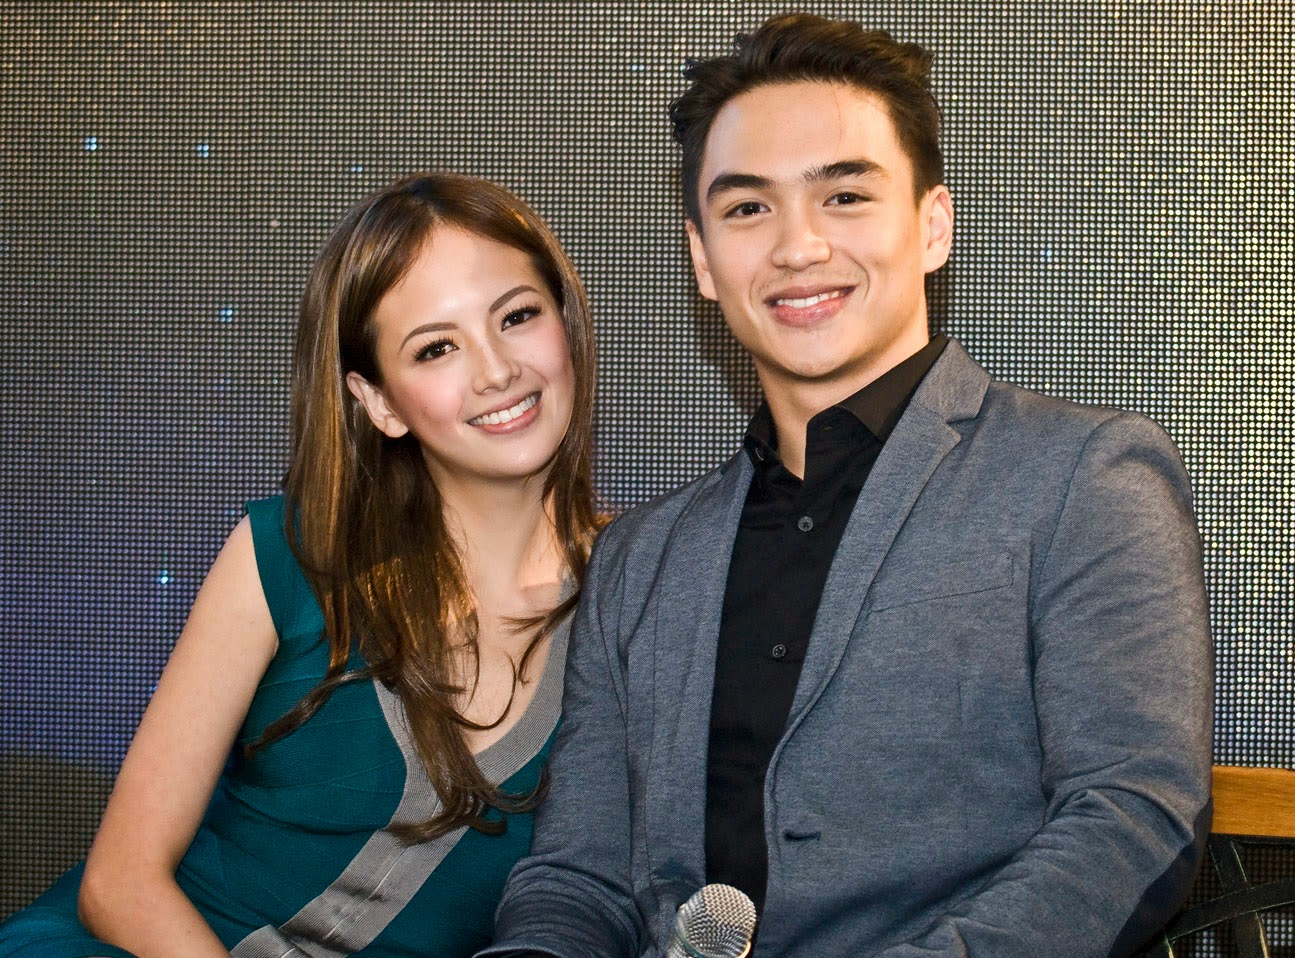 Miles Ocampo will cause some rebellious drama for the newly-wedded ...